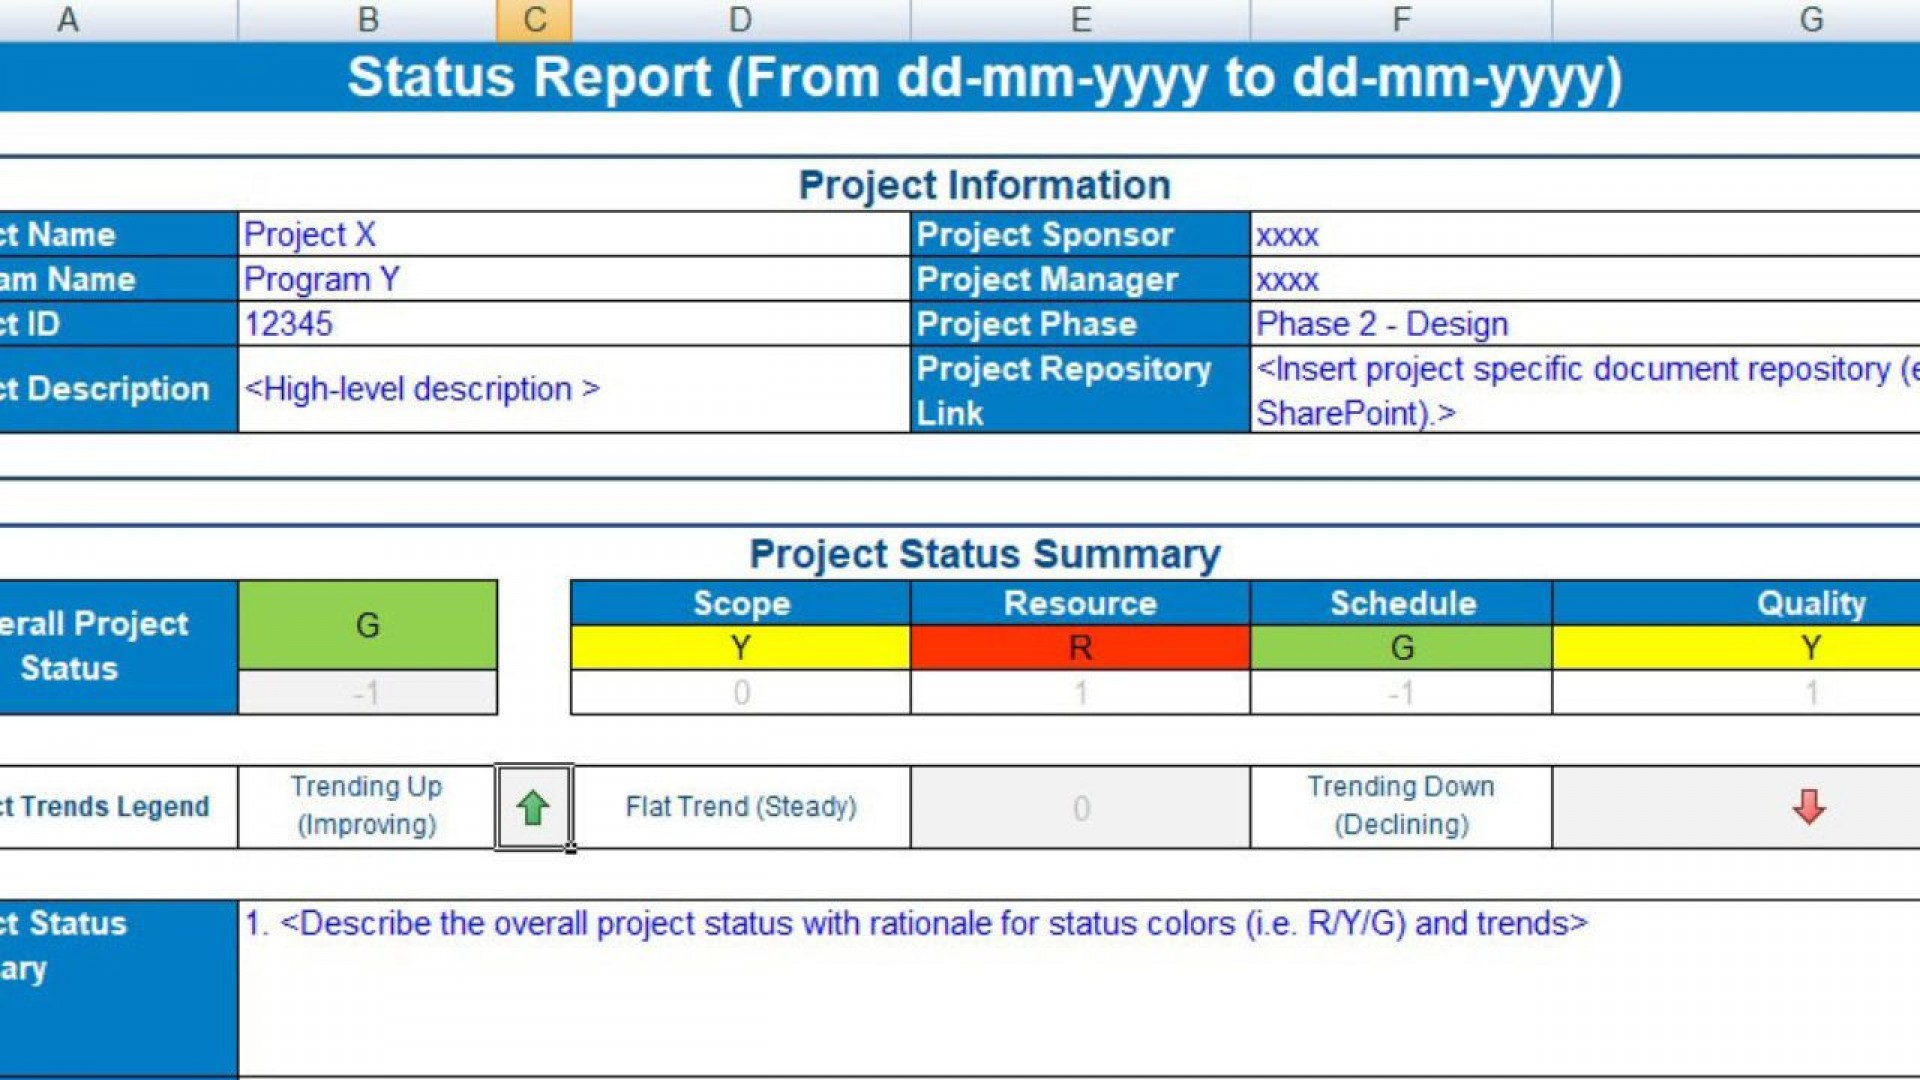 004 Archaicawful Project Statu Report Template Excel Idea  Free Progres Format Xl1920